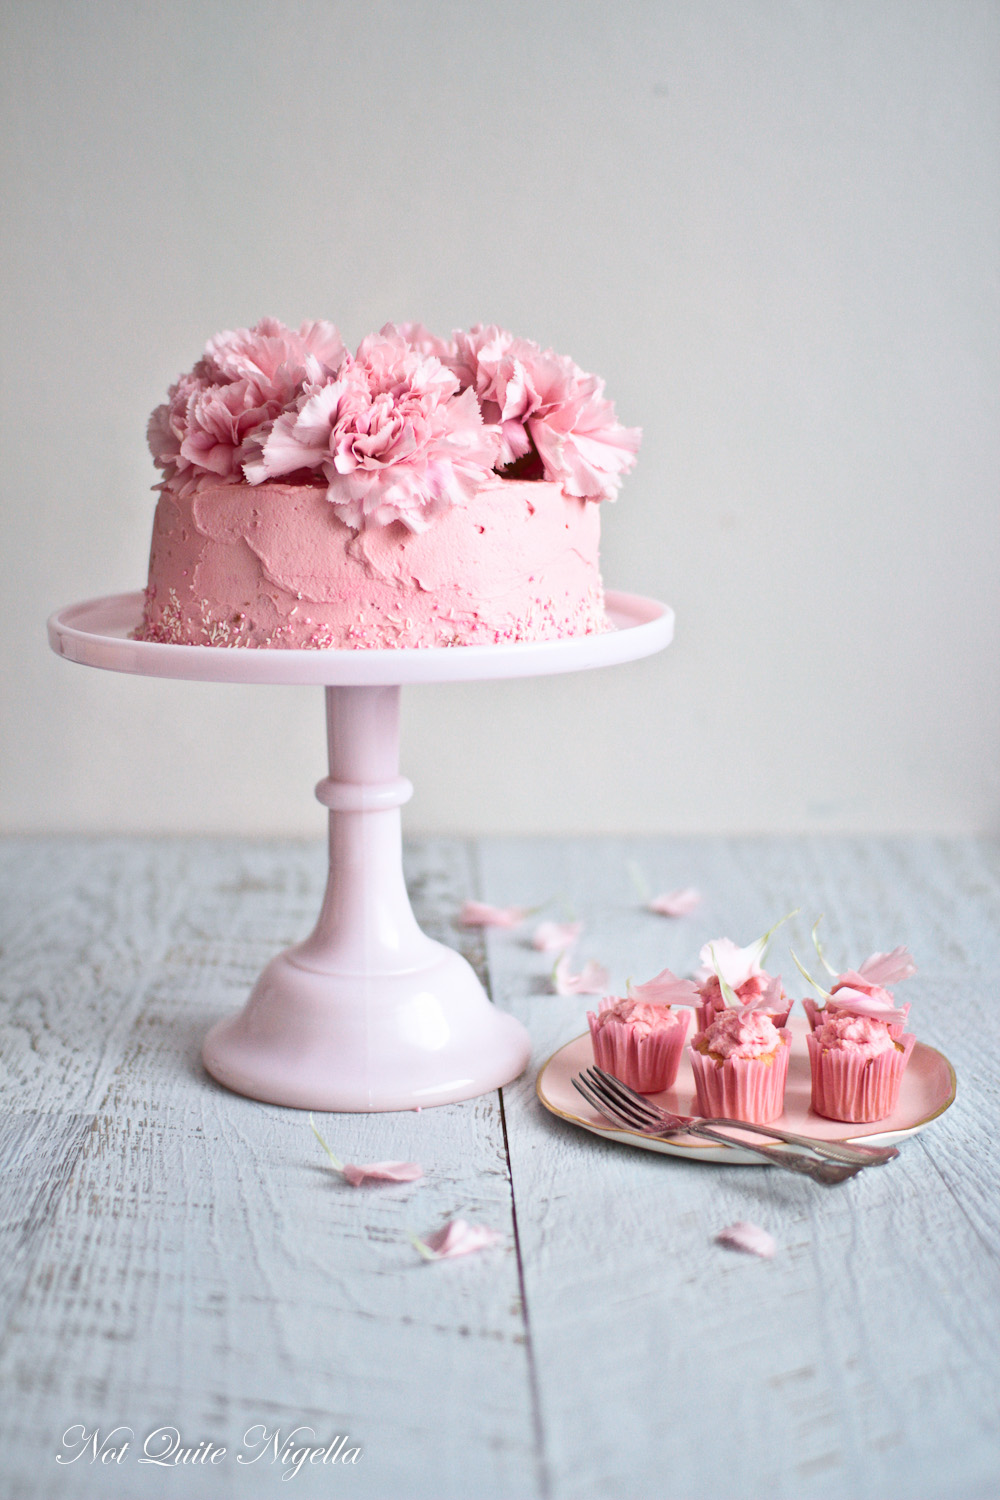 Rose Strawberry Chiffon Cake